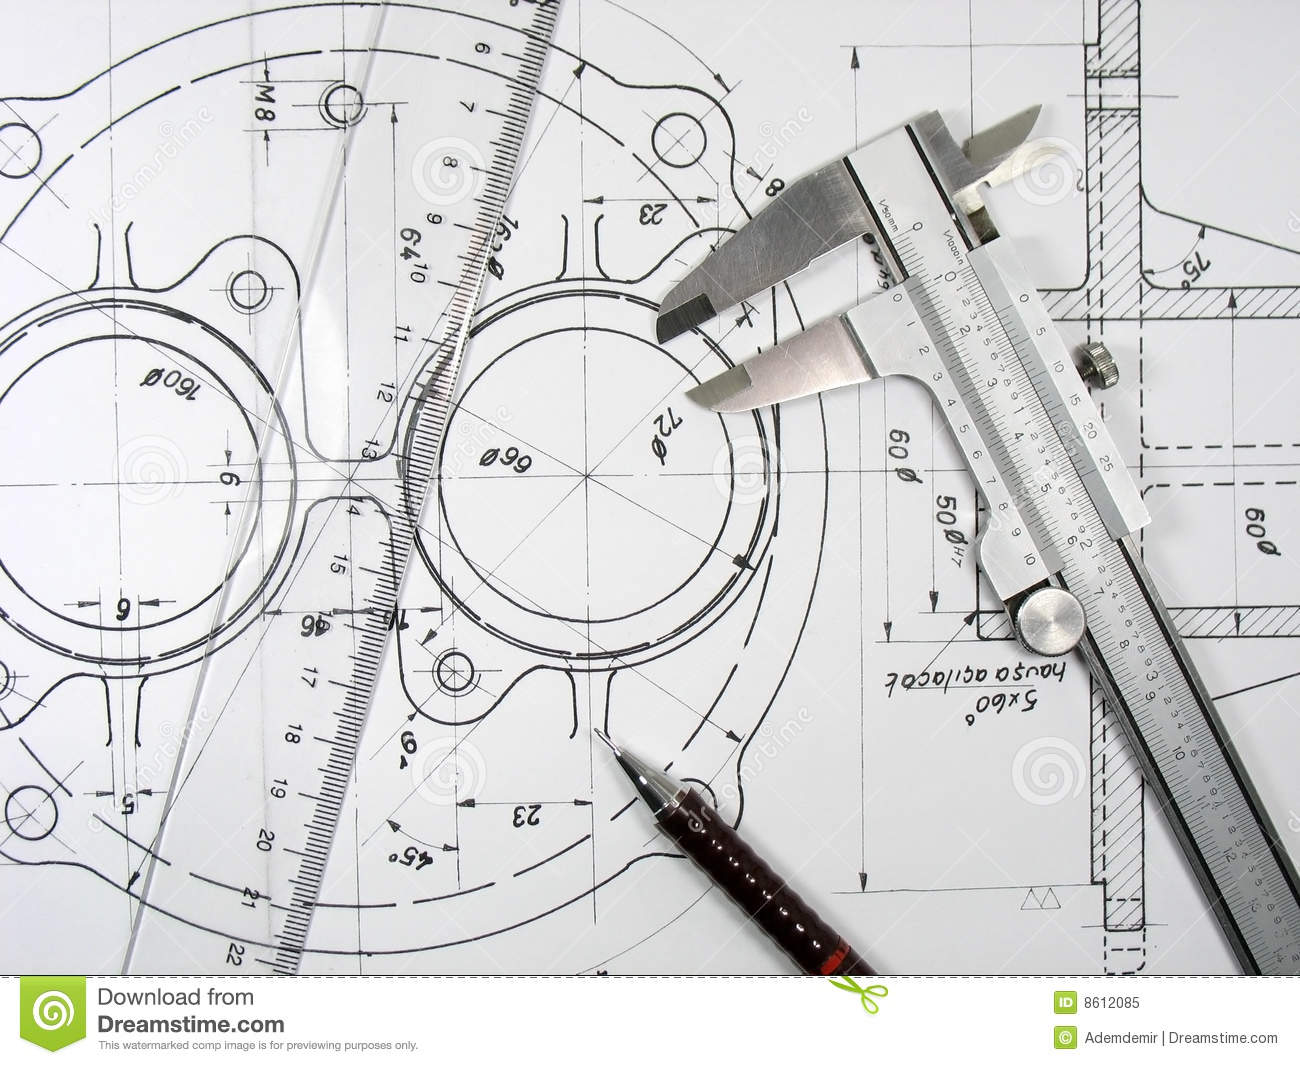 Https Www Dreamstime Com Royalty Free Stock Photo Caliper Ruler Pencil Technical Drawings Image8612085